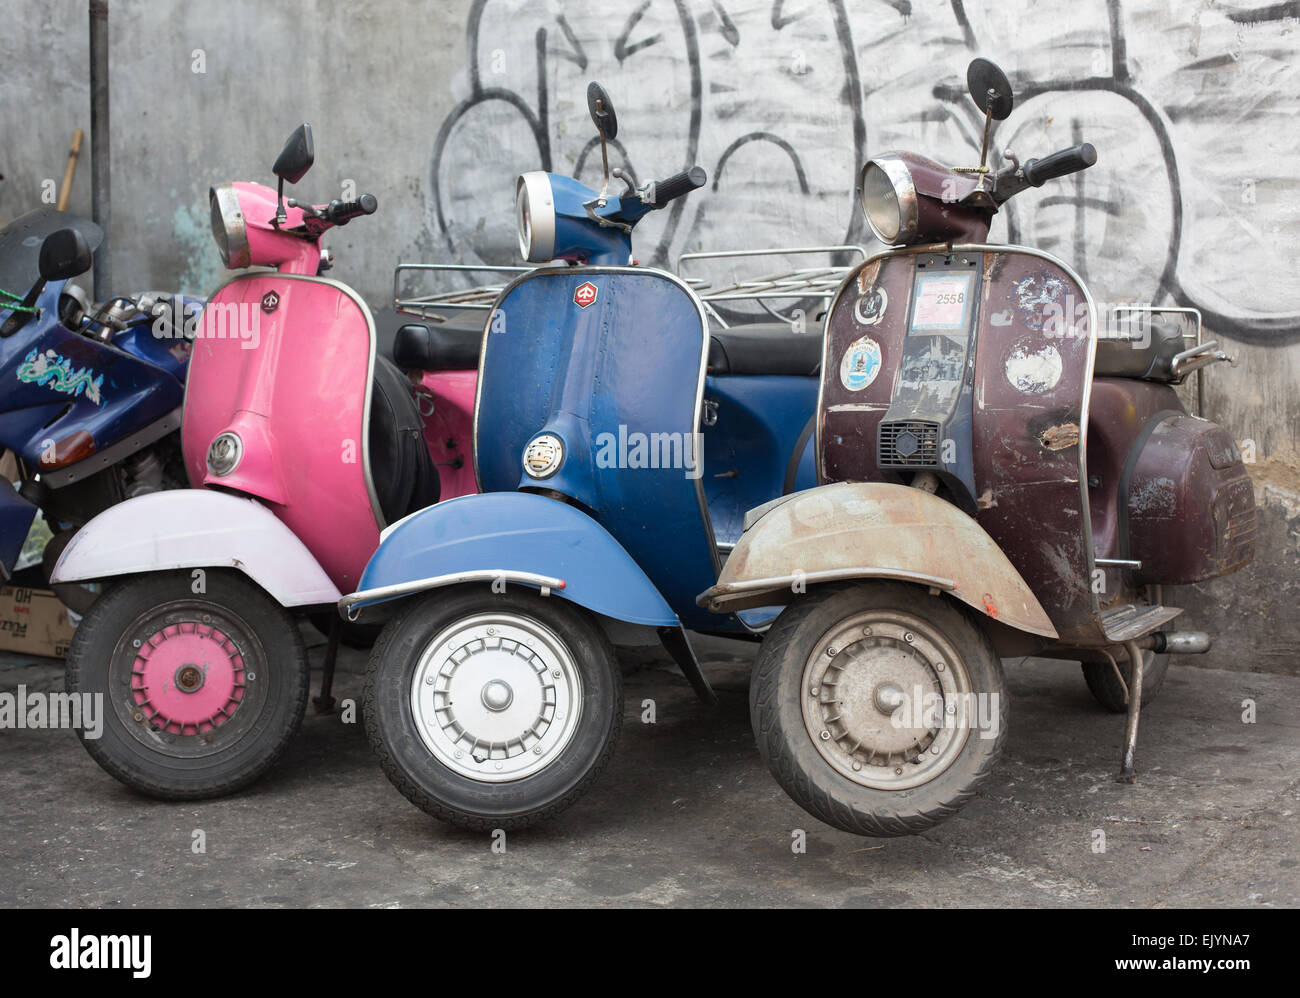 Three vintage vespa's of various colours lined up in front